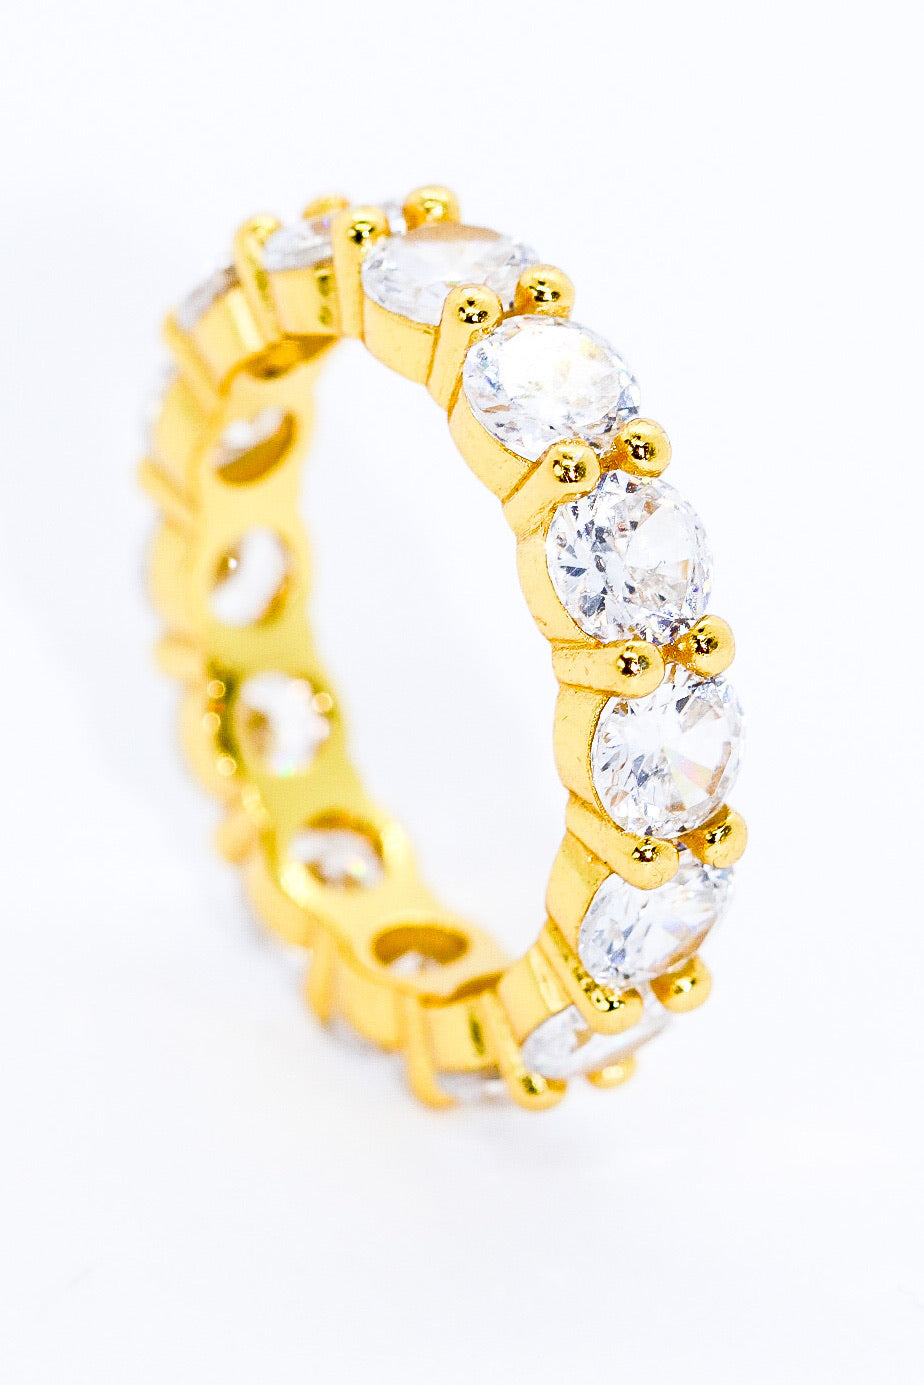 LARGE ROUND BLING BAND - Taimana Boutique